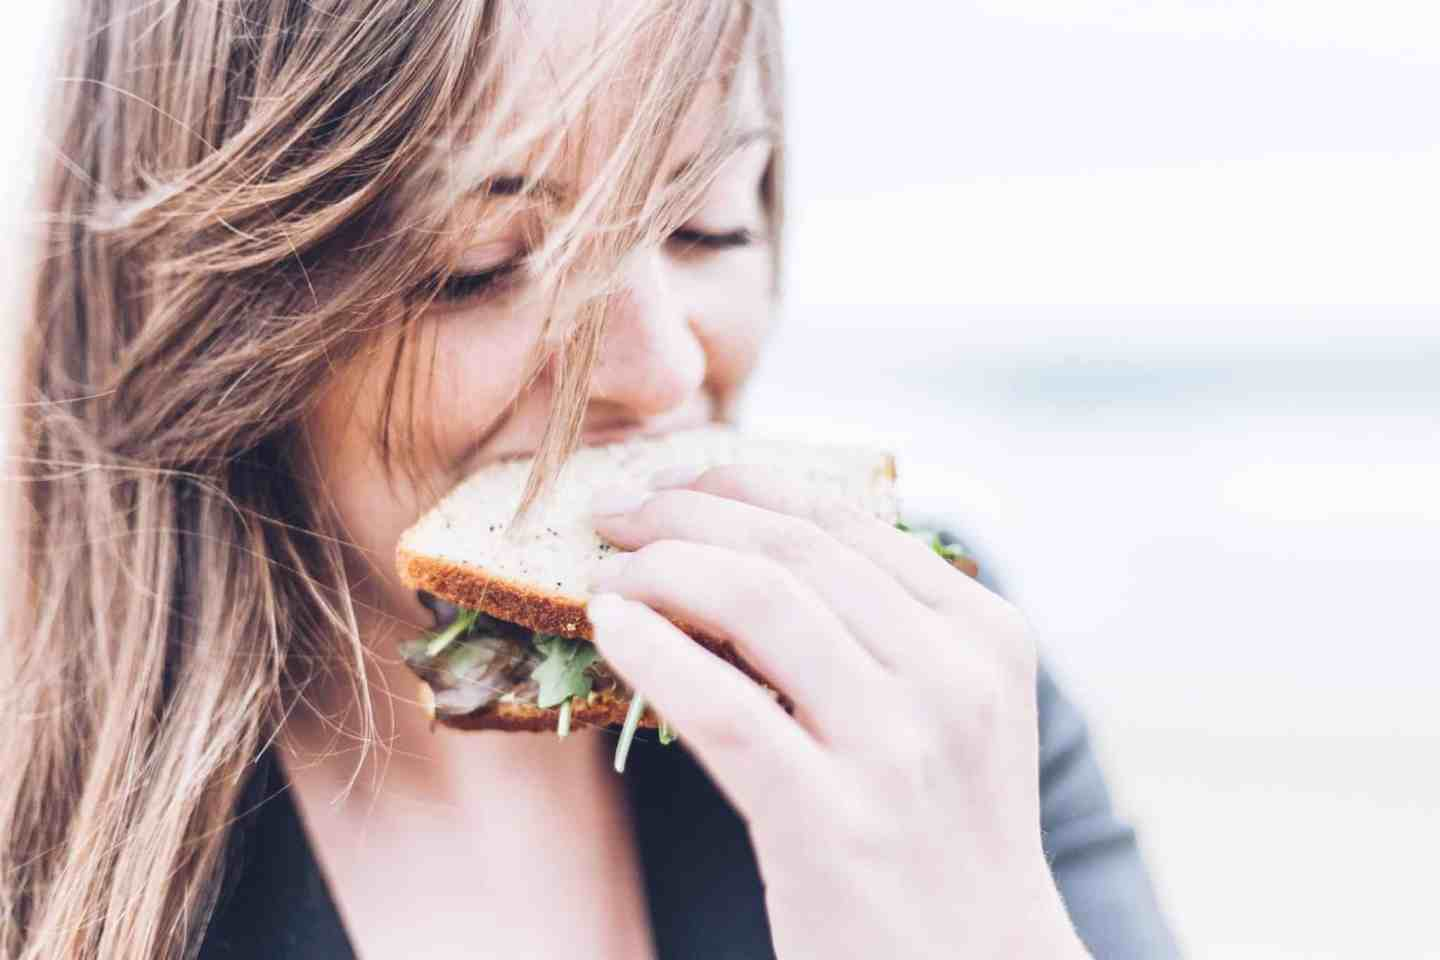 How to stop food cravings and food obsession